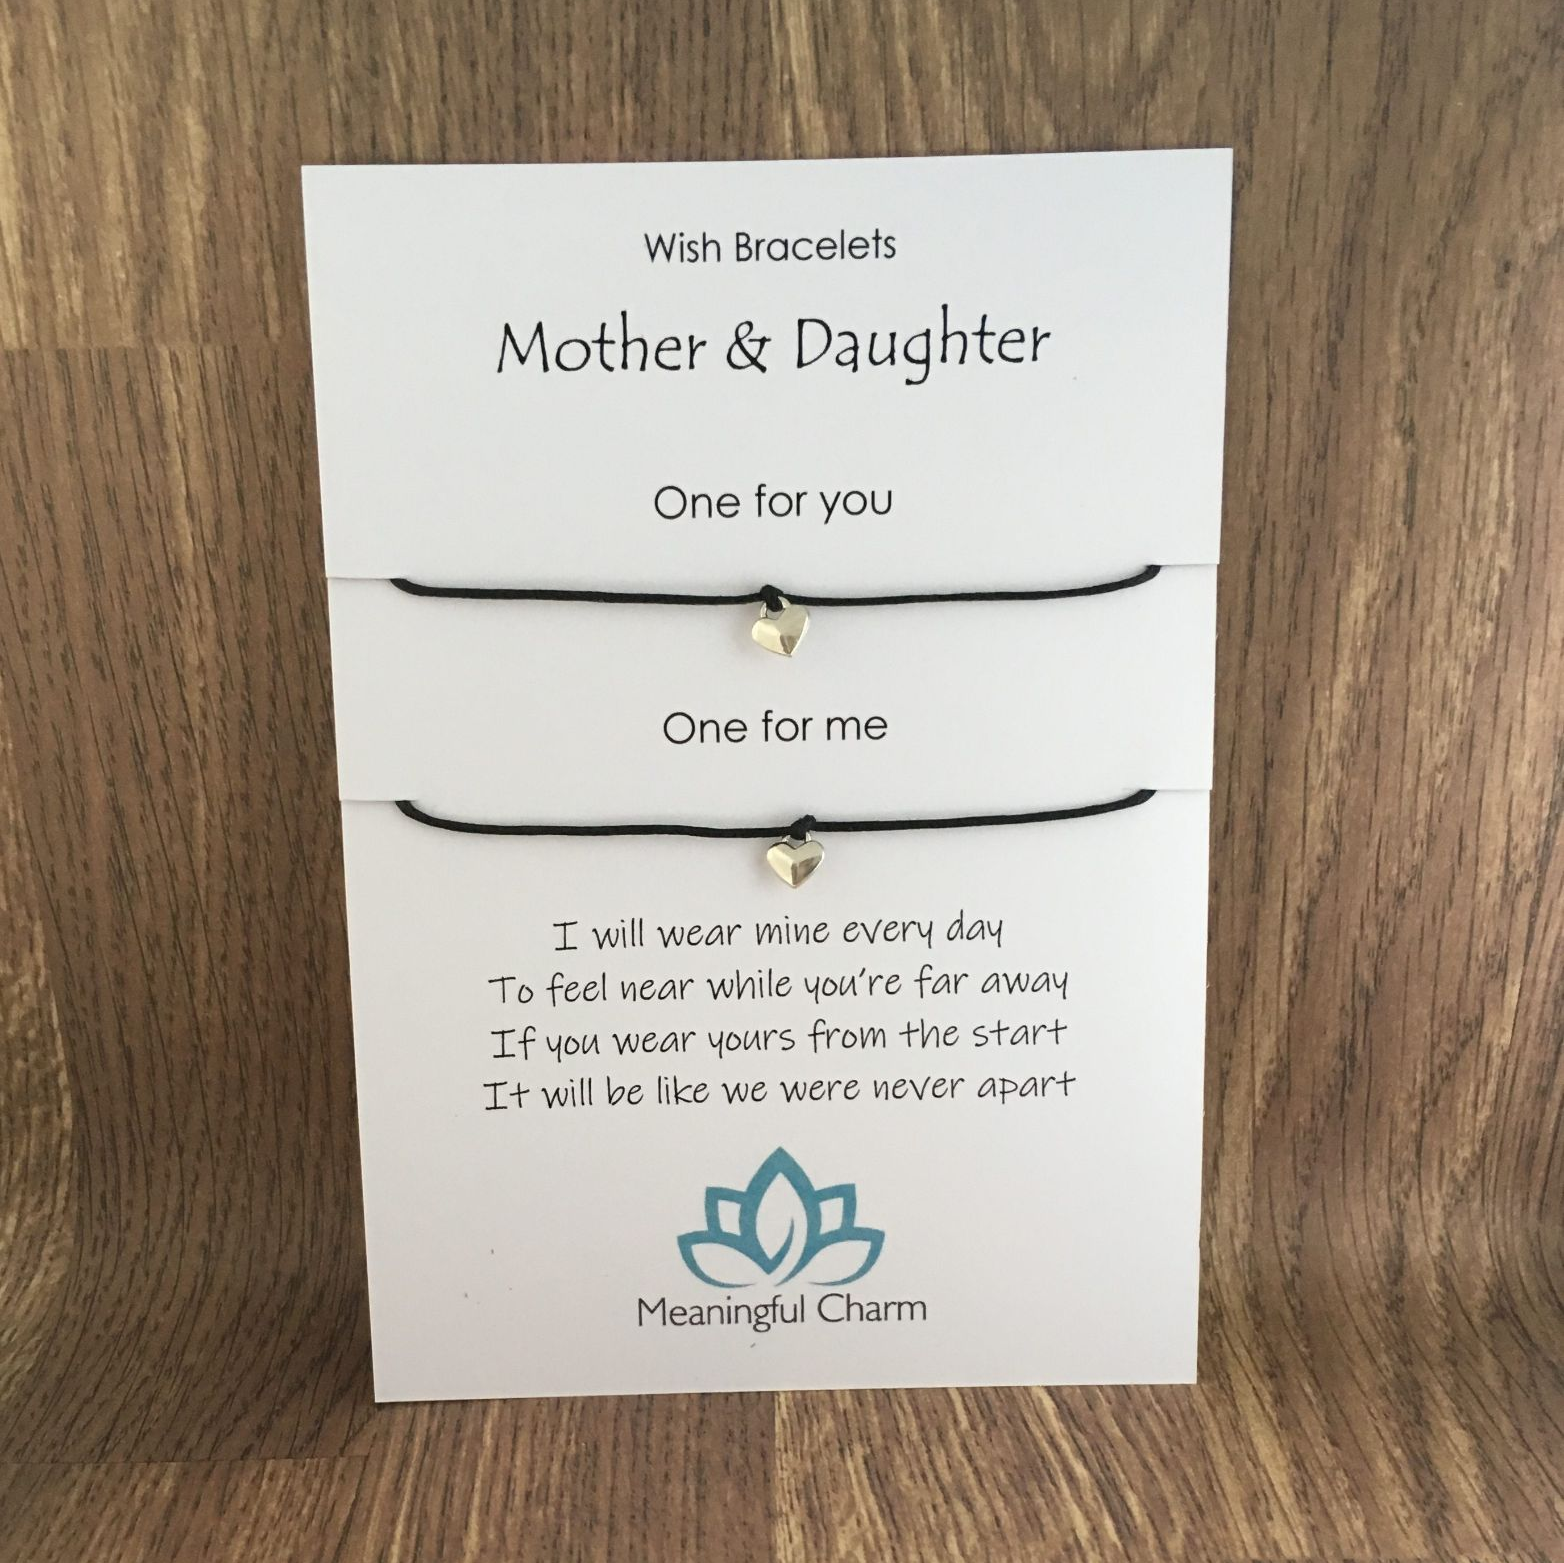 Mother and Daughter Wish Bracelets on a Card